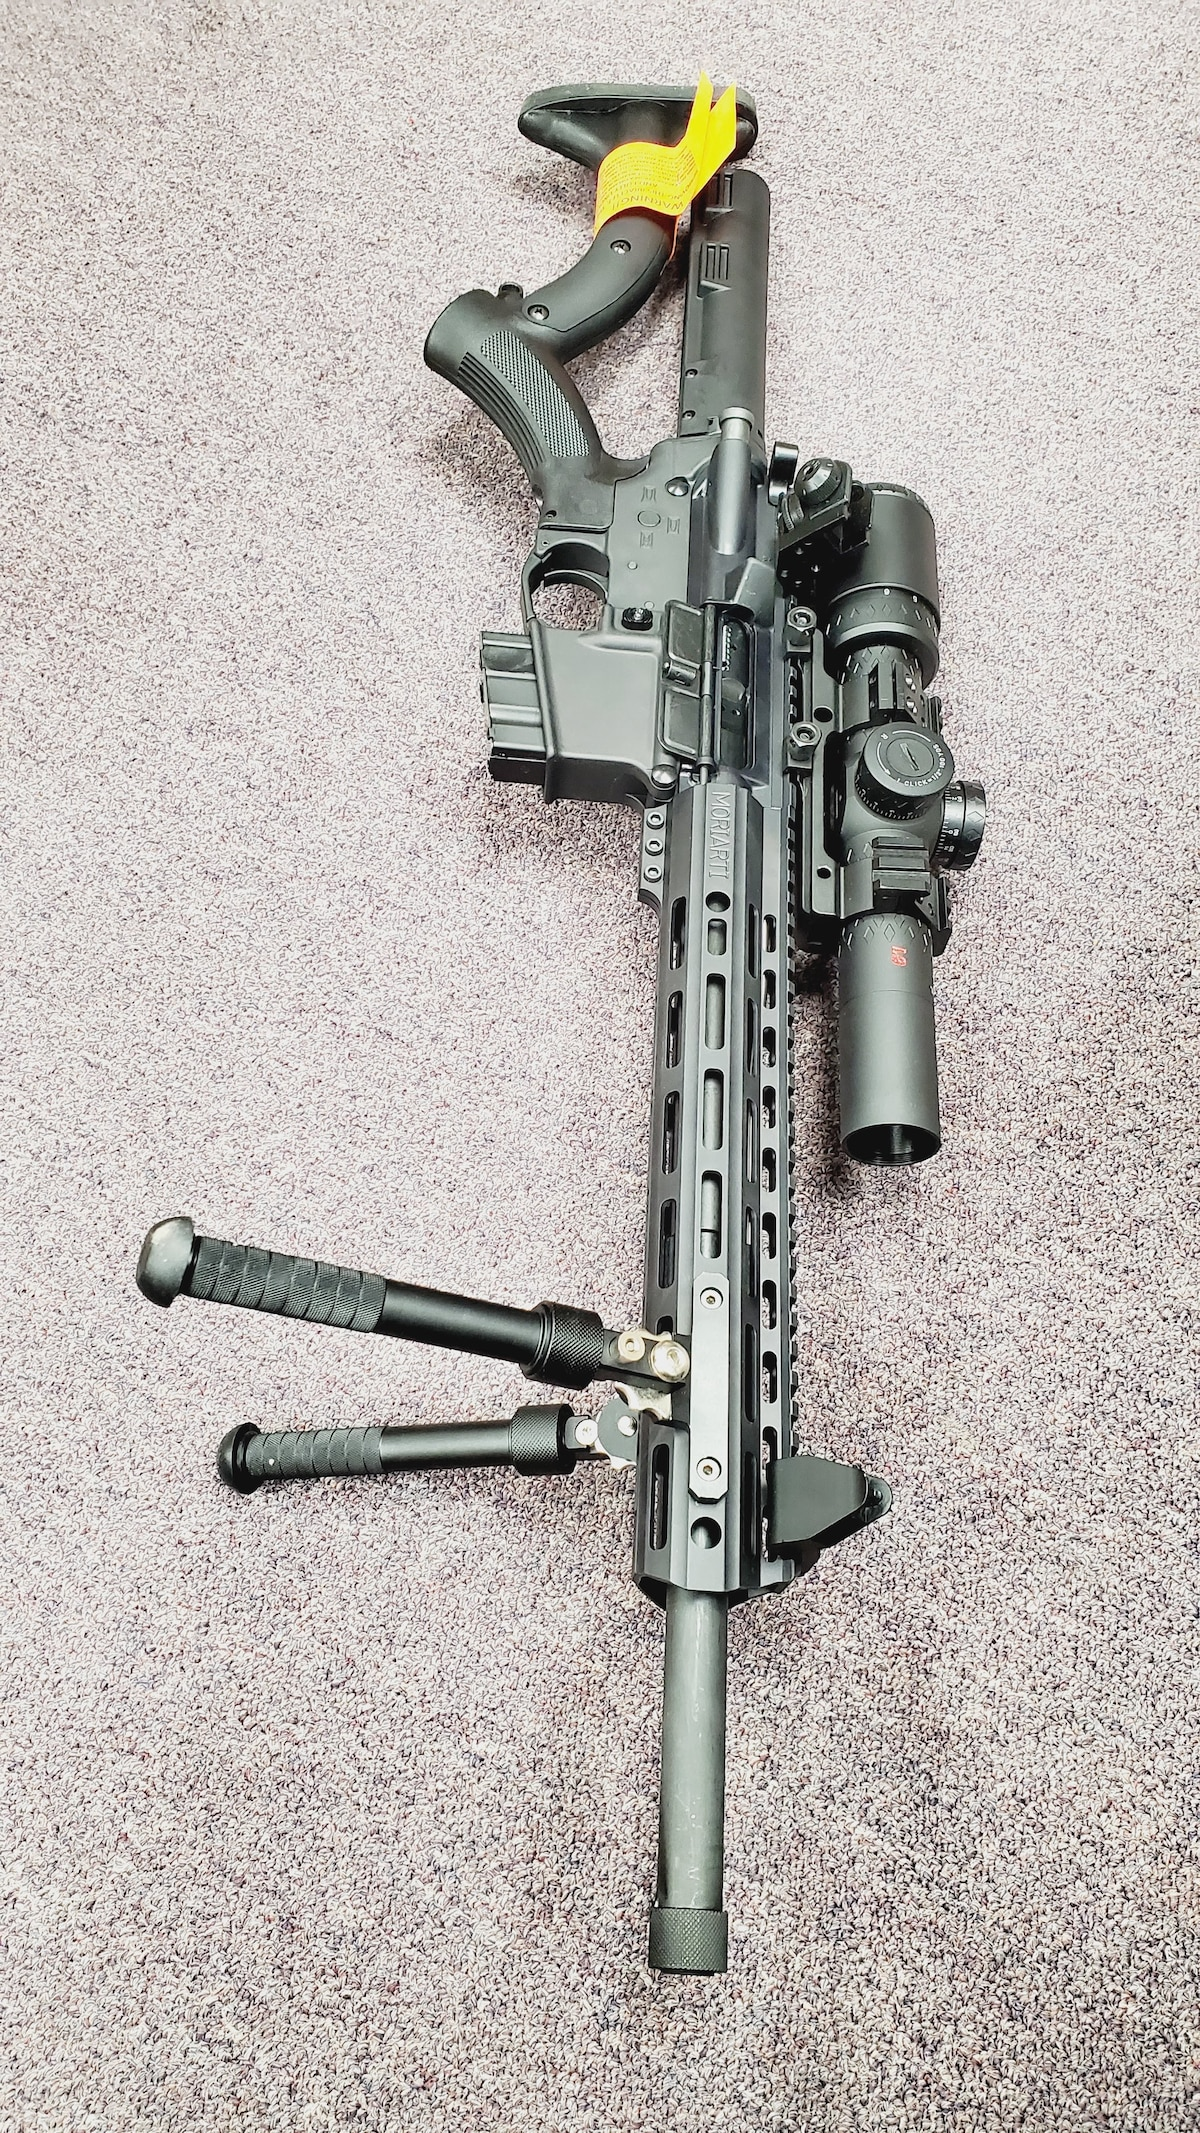 MORIARTI ARMAMENTS Special edition Featureless AR-15 with 10 rd magazine full package